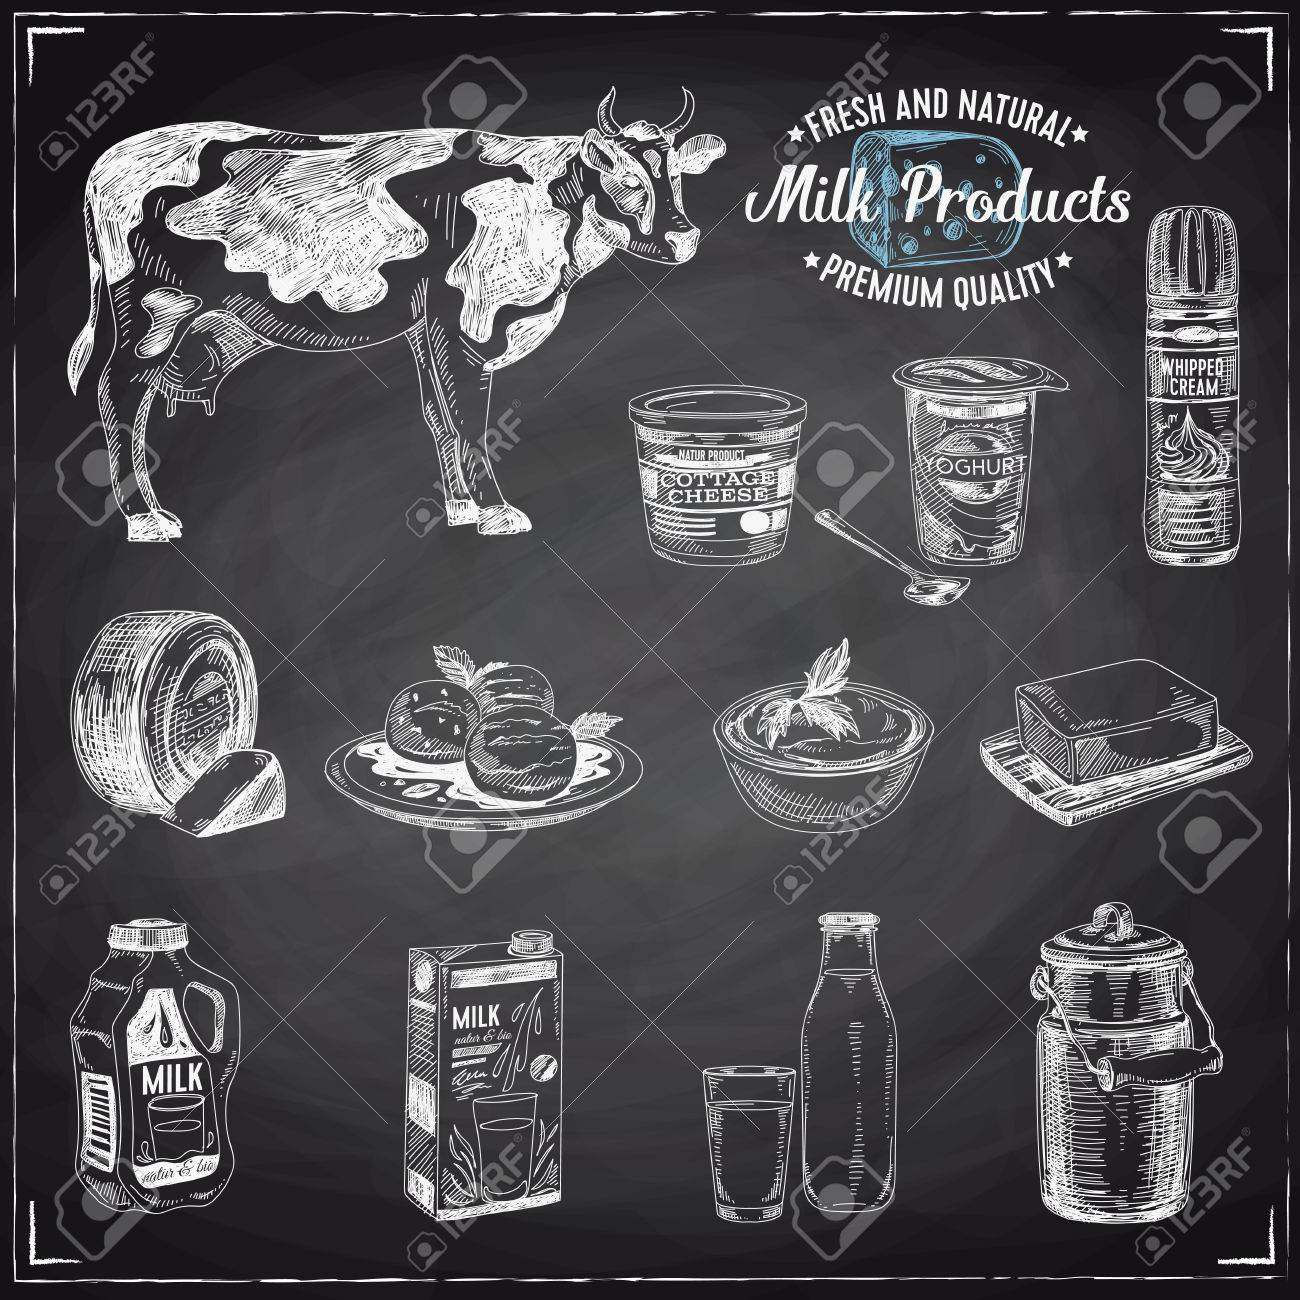 Vector hand drawn Illustration with milk products. Sketch. Vintage style. Retro background. Chalkboard - 66667882